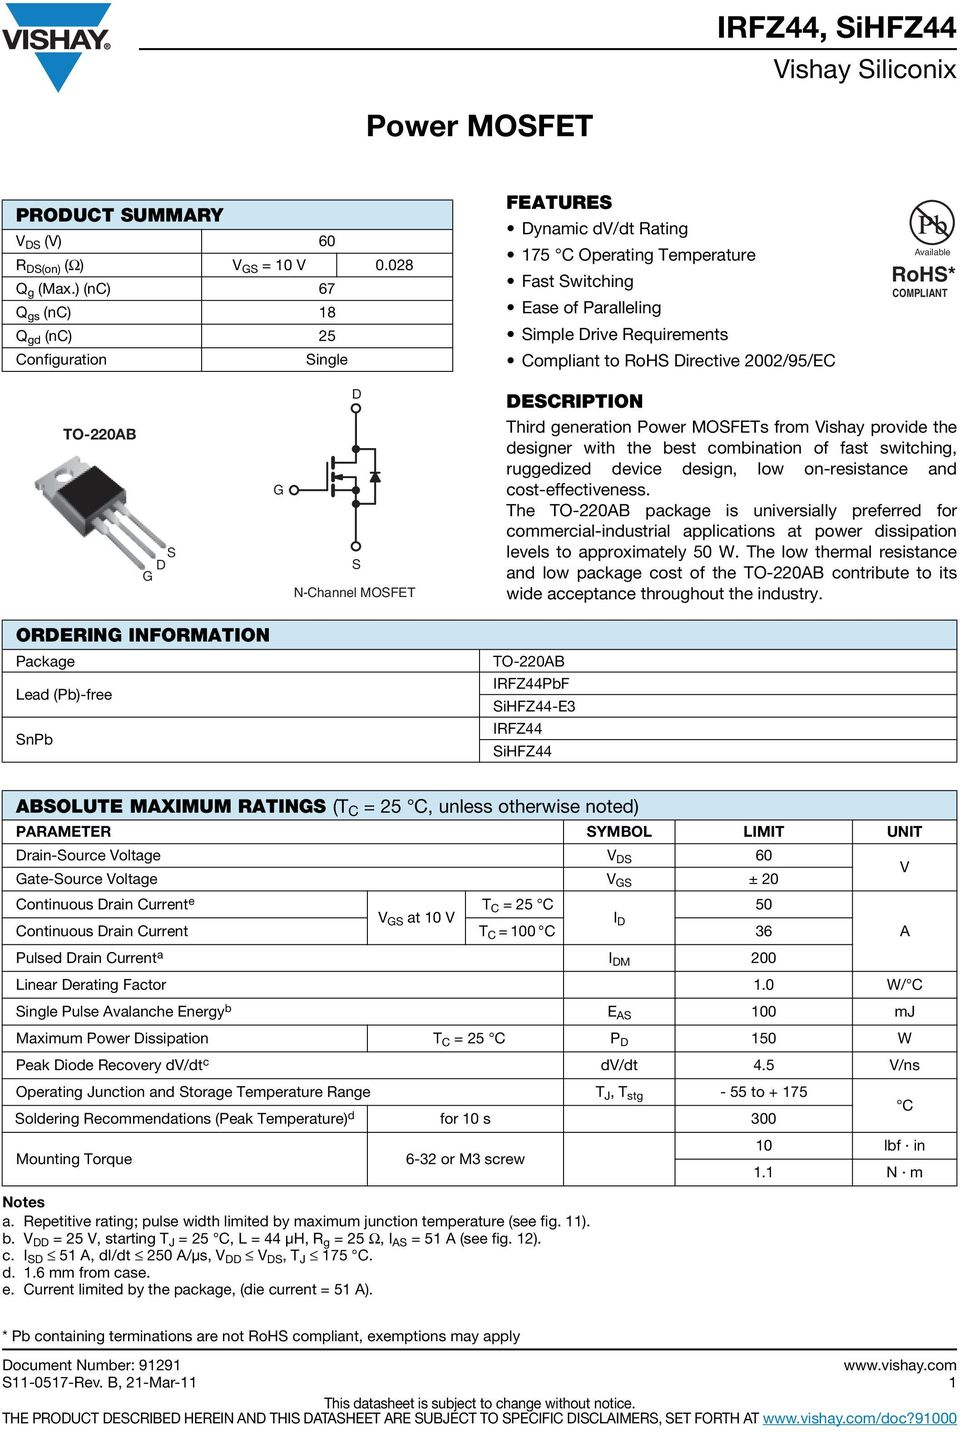 Directive 2002/95/EC Available RoHS* COMPLIANT TO220AB G DS G D S NChannel MOSFET DESCRIPTION Third generation Power MOSFETs from Vishay provide the designer with the best combination of fast